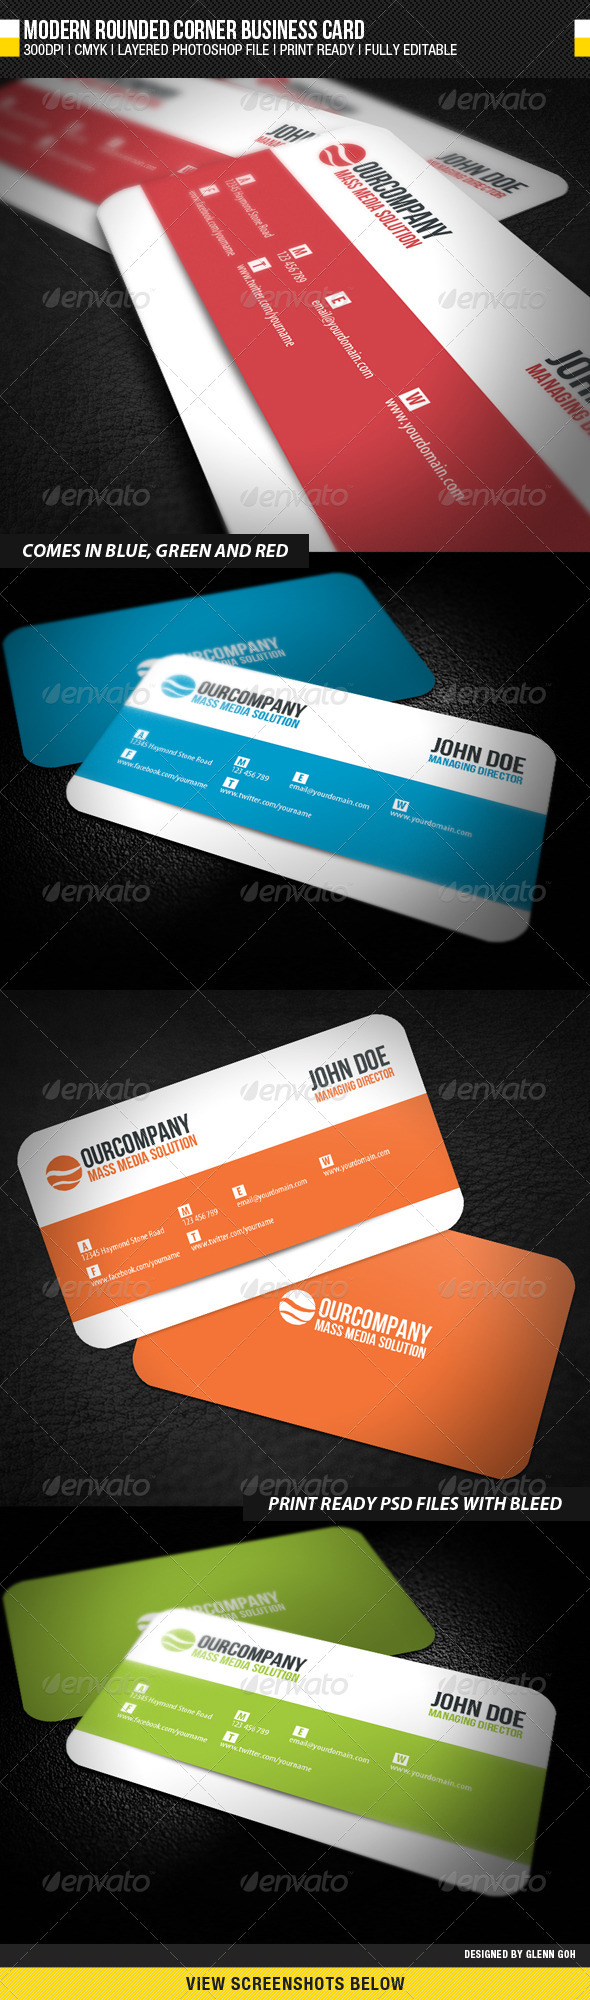 GraphicRiver Modern Rounded Corner Business Card 1574902